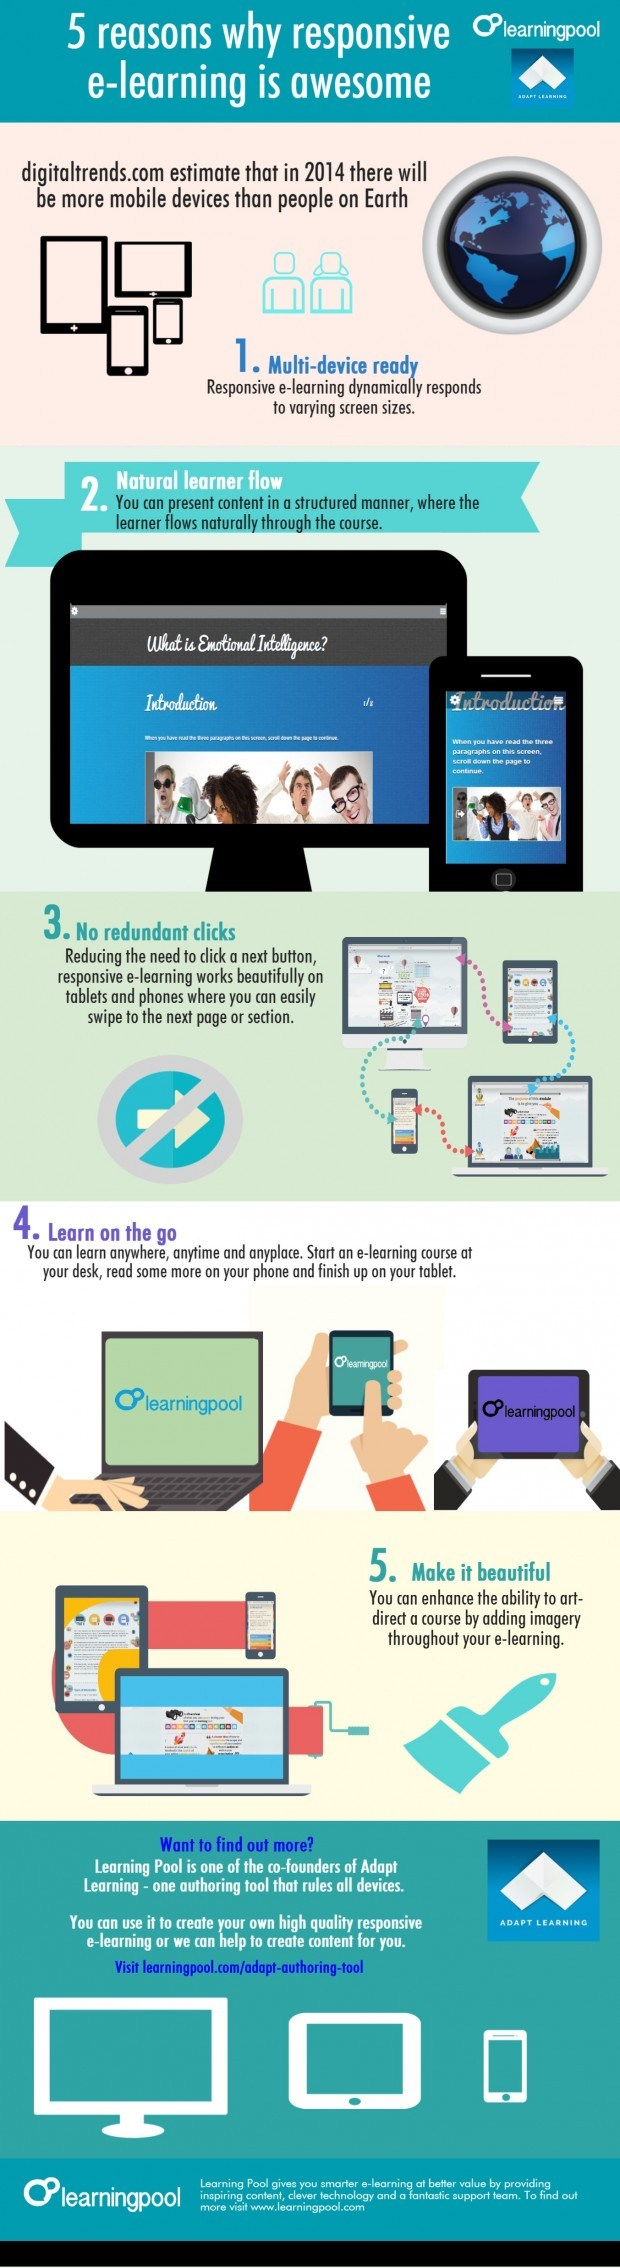 Responsive-e-learning-5-reasons-3